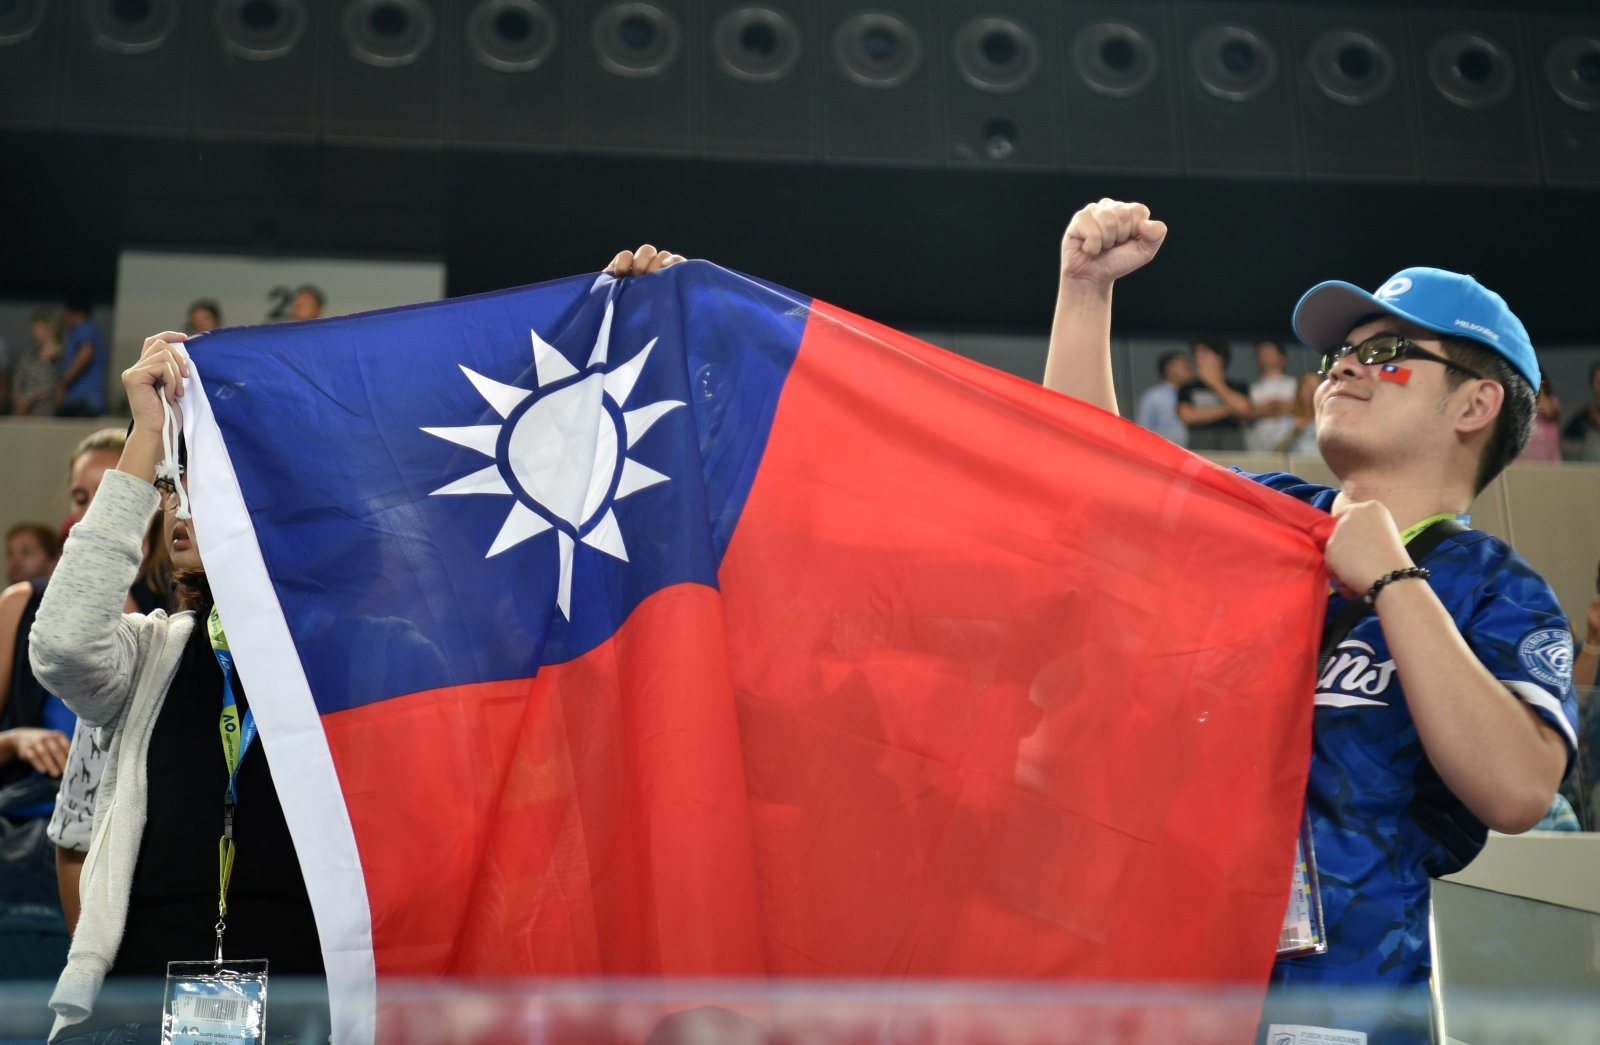 Fans of Taiwan's Hsieh Su-Wei hold the Taiwan flag after she beat Poland's Agnieszka Radwanska in their women's singles third round match on day six of the Australian Open tennis tournament in Melbourne on January 20, 2018. / AFP PHOTO / PETER PARKS / -- IMAGE RESTRICTED TO EDITORIAL USE - STRICTLY NO COMMERCIAL USE --        (Photo credit should read PETER PARKS/AFP/Getty Images)